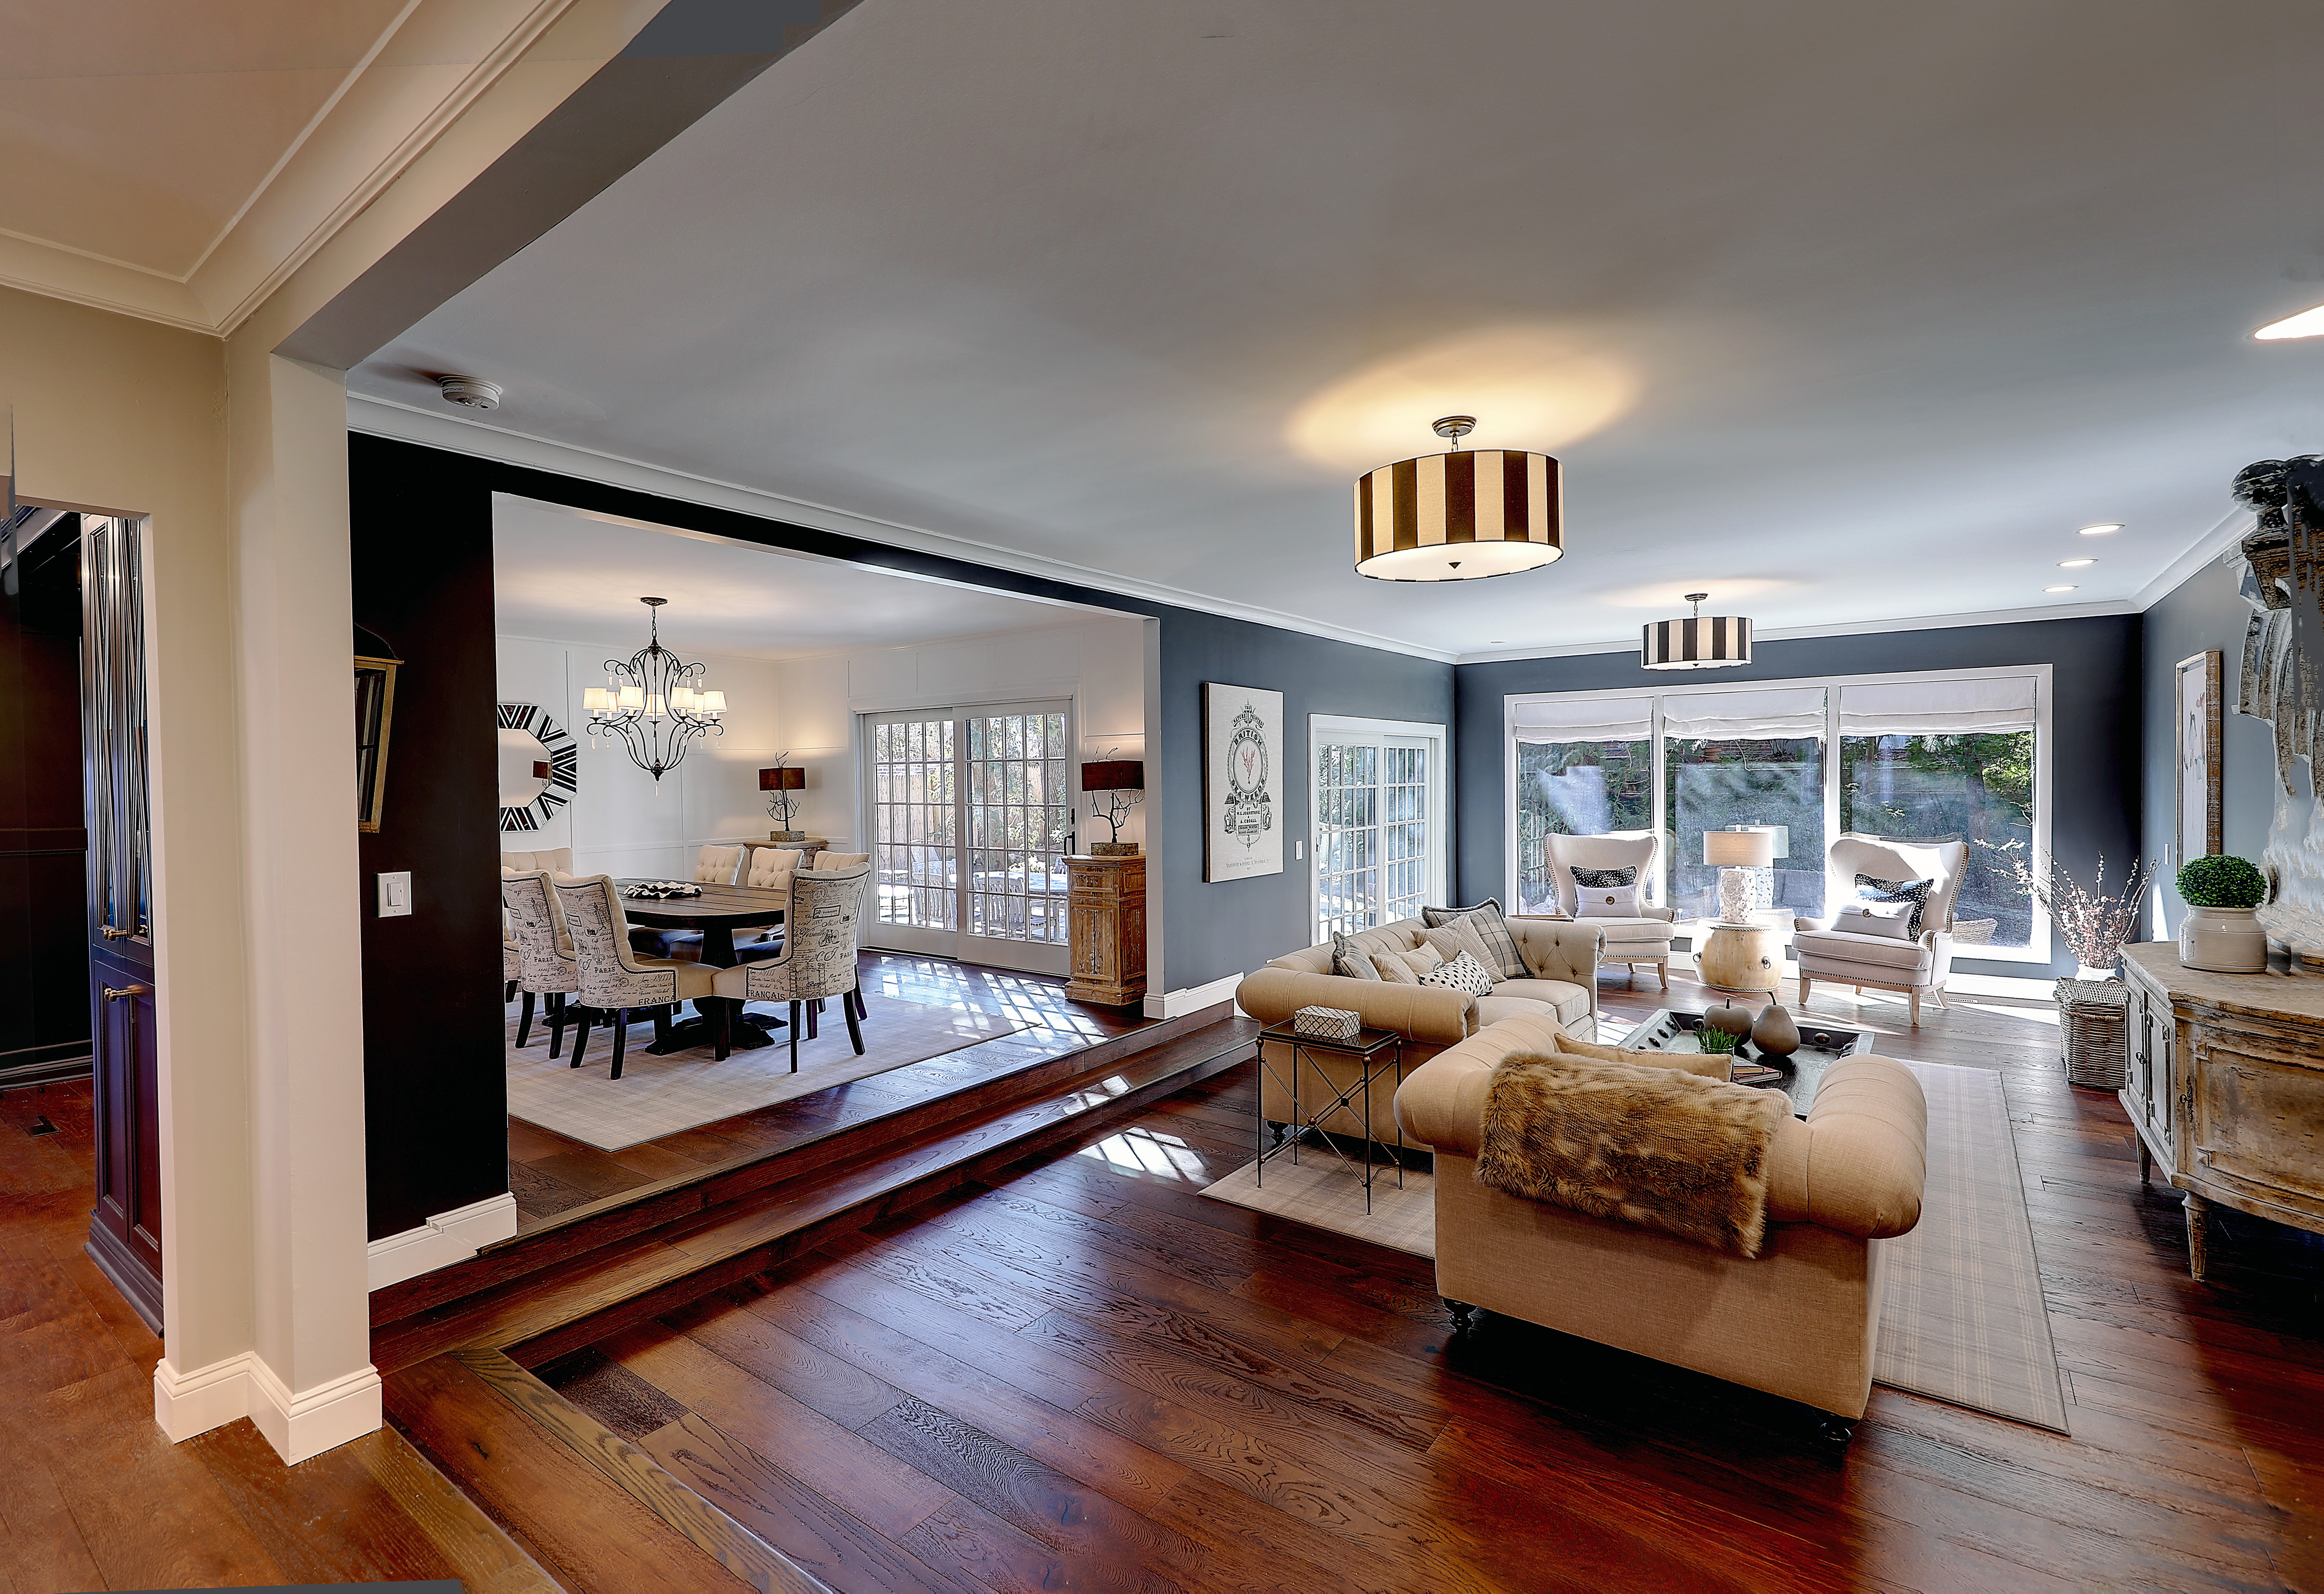 THE HOME has a front to back living room. / / COURTESY RESIDENTIAL PROPERTIES LTD.